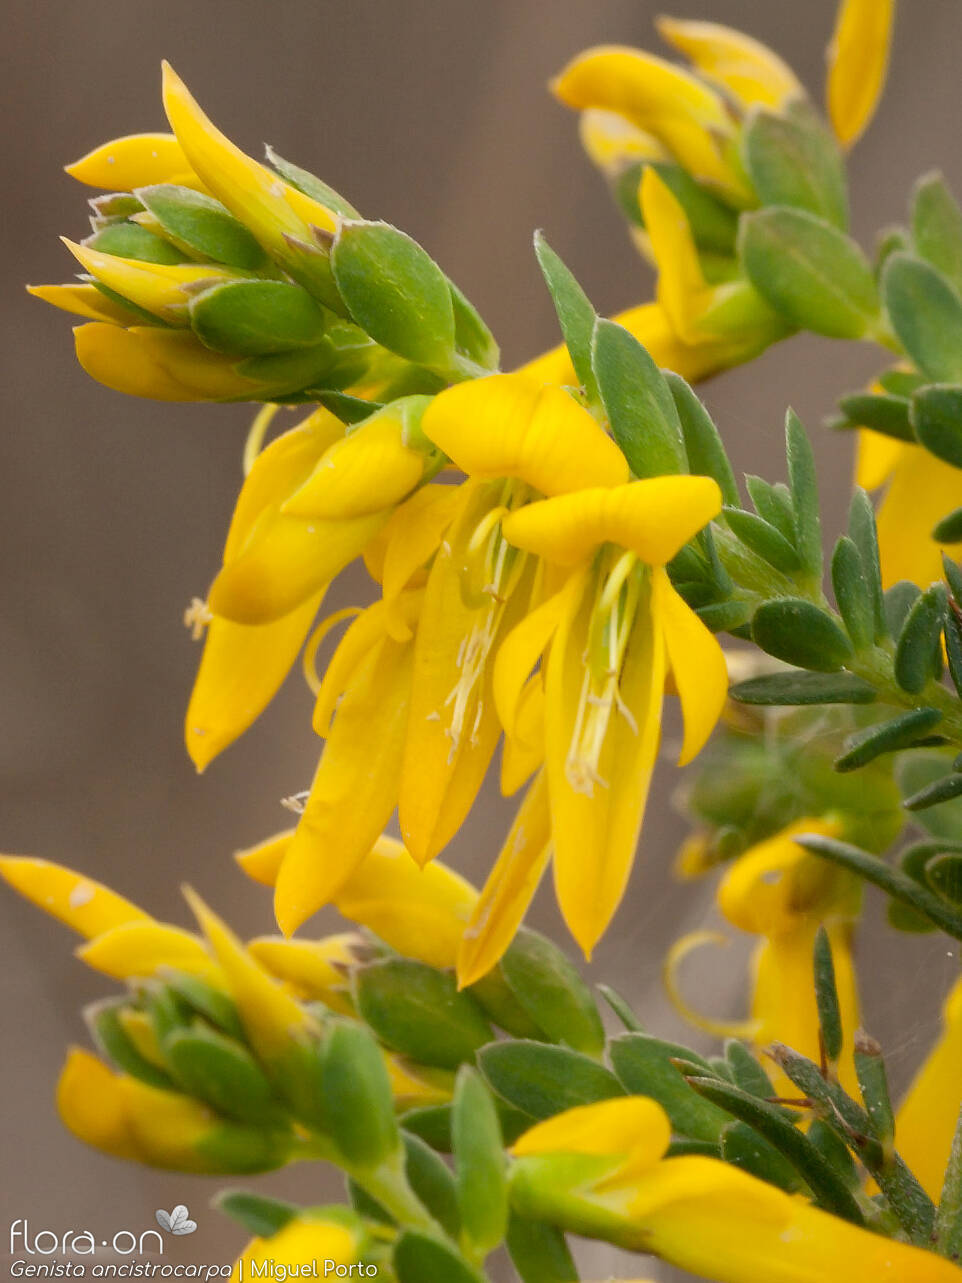 Genista ancistrocarpa - Flor (close-up) | Miguel Porto; CC BY-NC 4.0